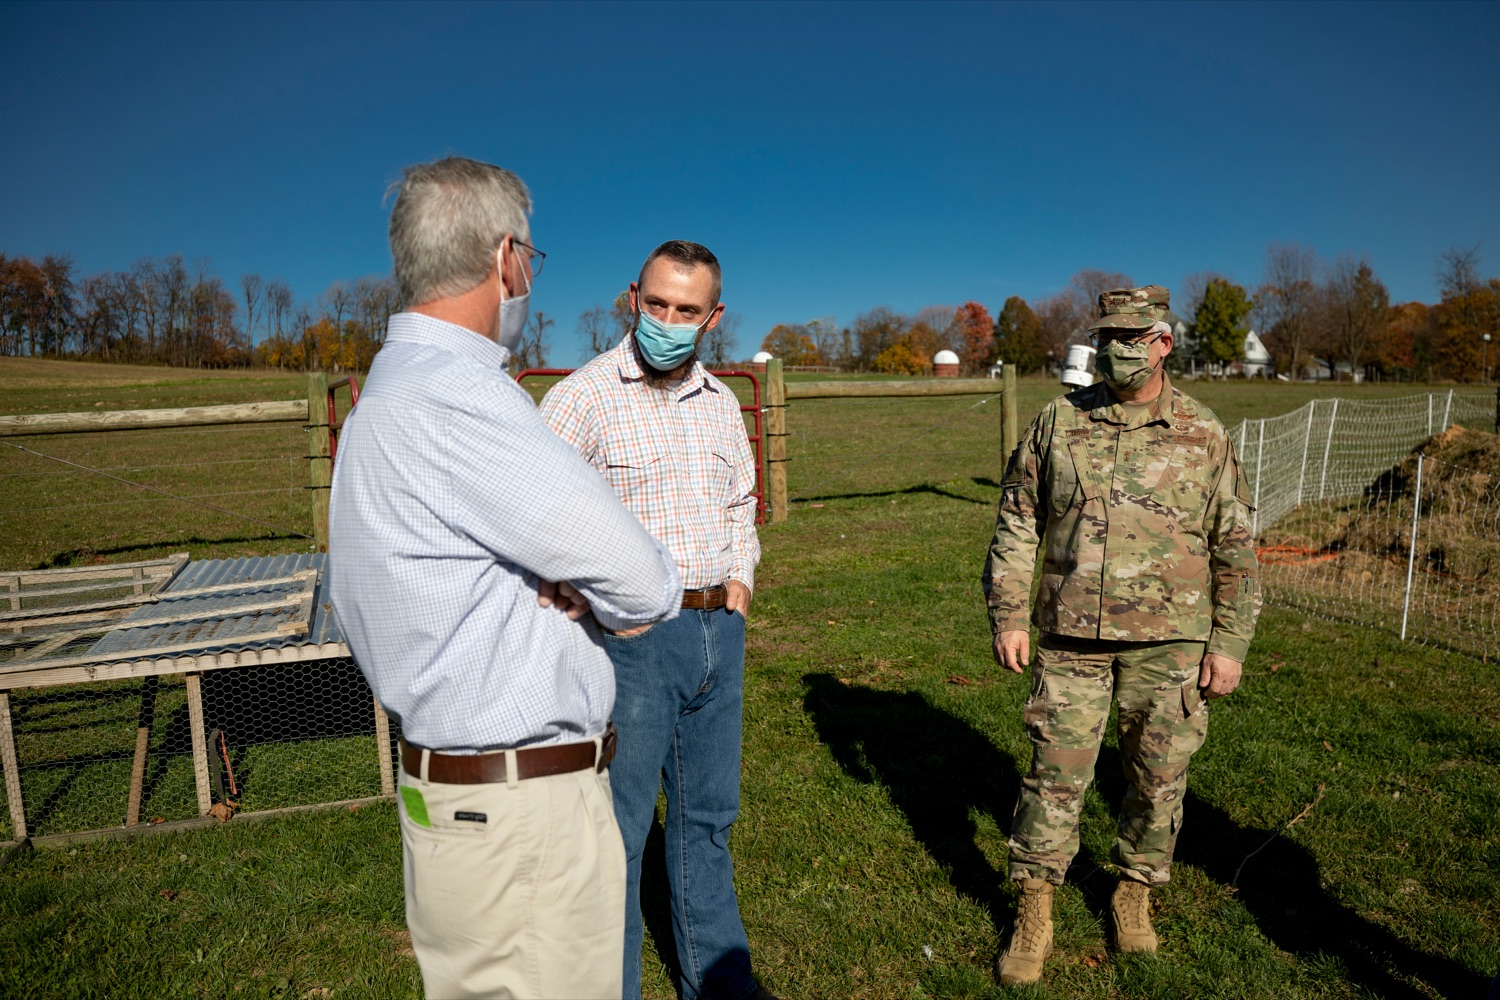 """<a href=""""https://filesource.wostreaming.net/commonwealthofpa/photo/18388_AGRIC_Veteran_Farmers_NK_013.jpg"""" target=""""_blank"""">⇣Download Photo<br></a>U.S. Marine Corps Veteran Daniel Hubbard, center, talks with Anthony J. Carrelli, Pennsylvanias adjutant general and head of the Department of Military and Veterans Affairs, right, and Agriculture Secretary Russell Redding on Hubbard's Family Ranch in Adams County on Friday, November 6, 2020. Hubbard's Family Ranch received grants in September through the states $10 million Fresh Food Financing Initiative COVID-19 Relief Fund to expand access to fresh food in low-income communities during the pandemic."""